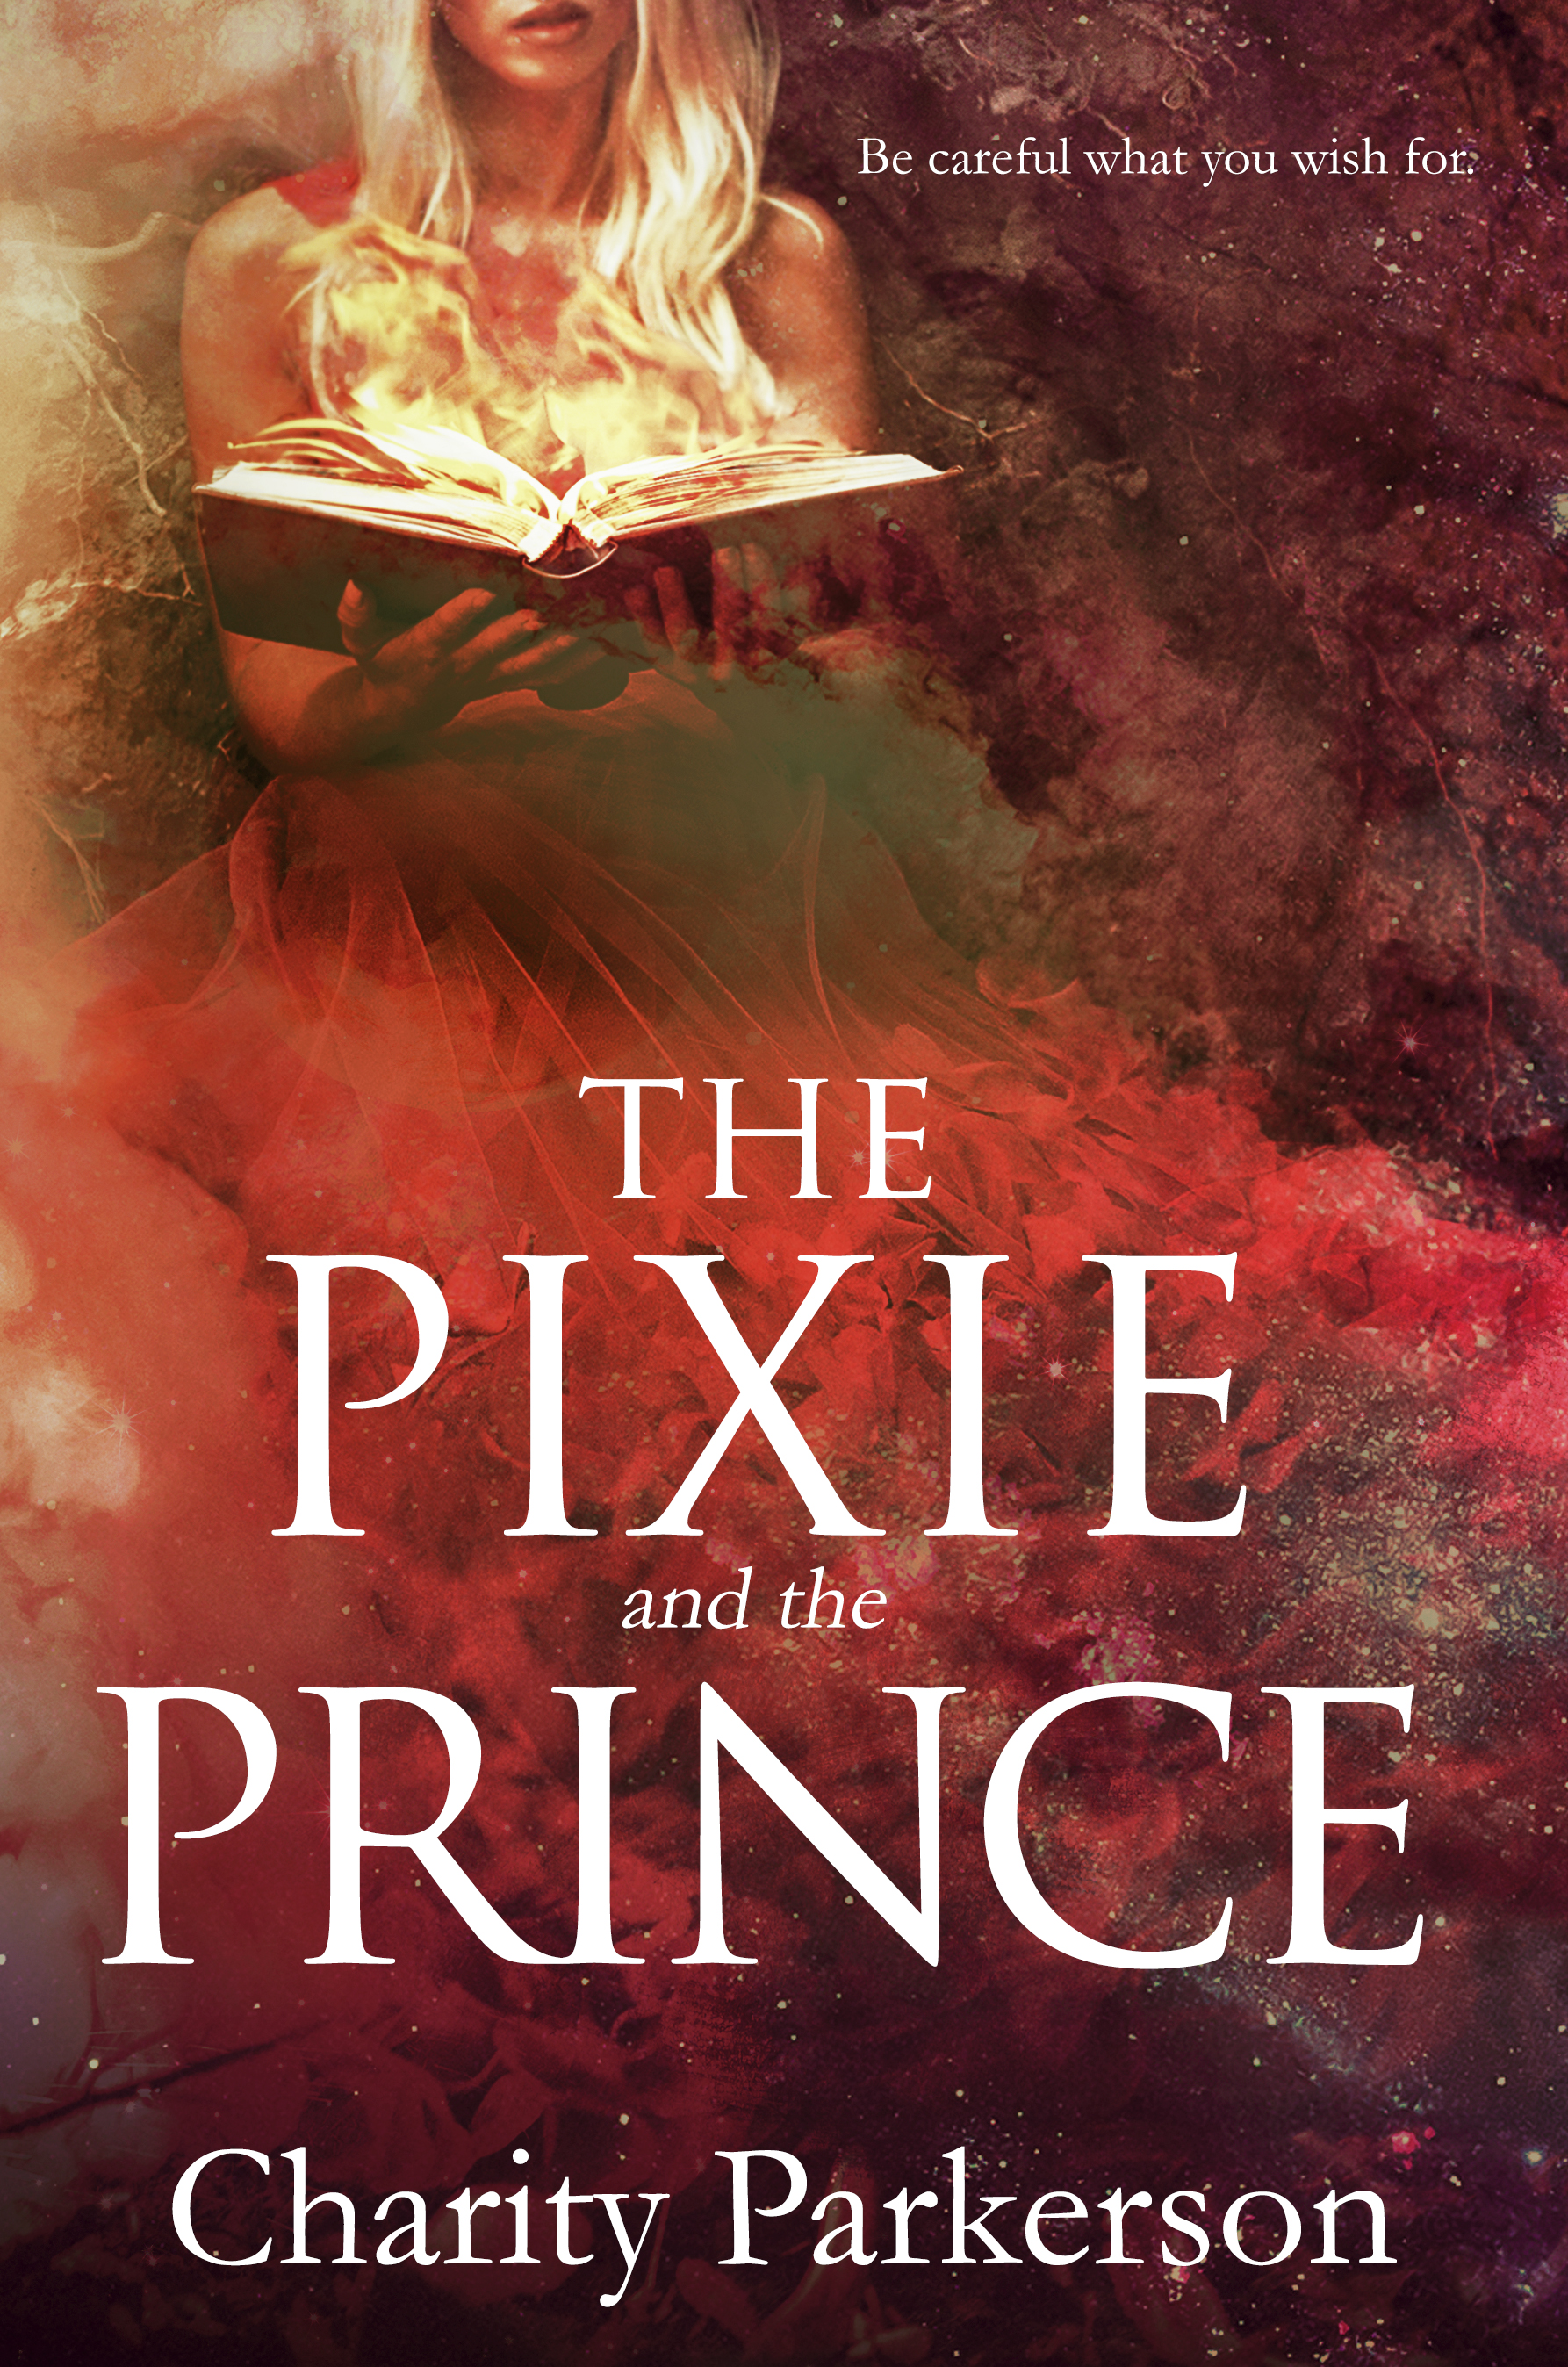 The Pixie and the Prince by Charity Parkerson